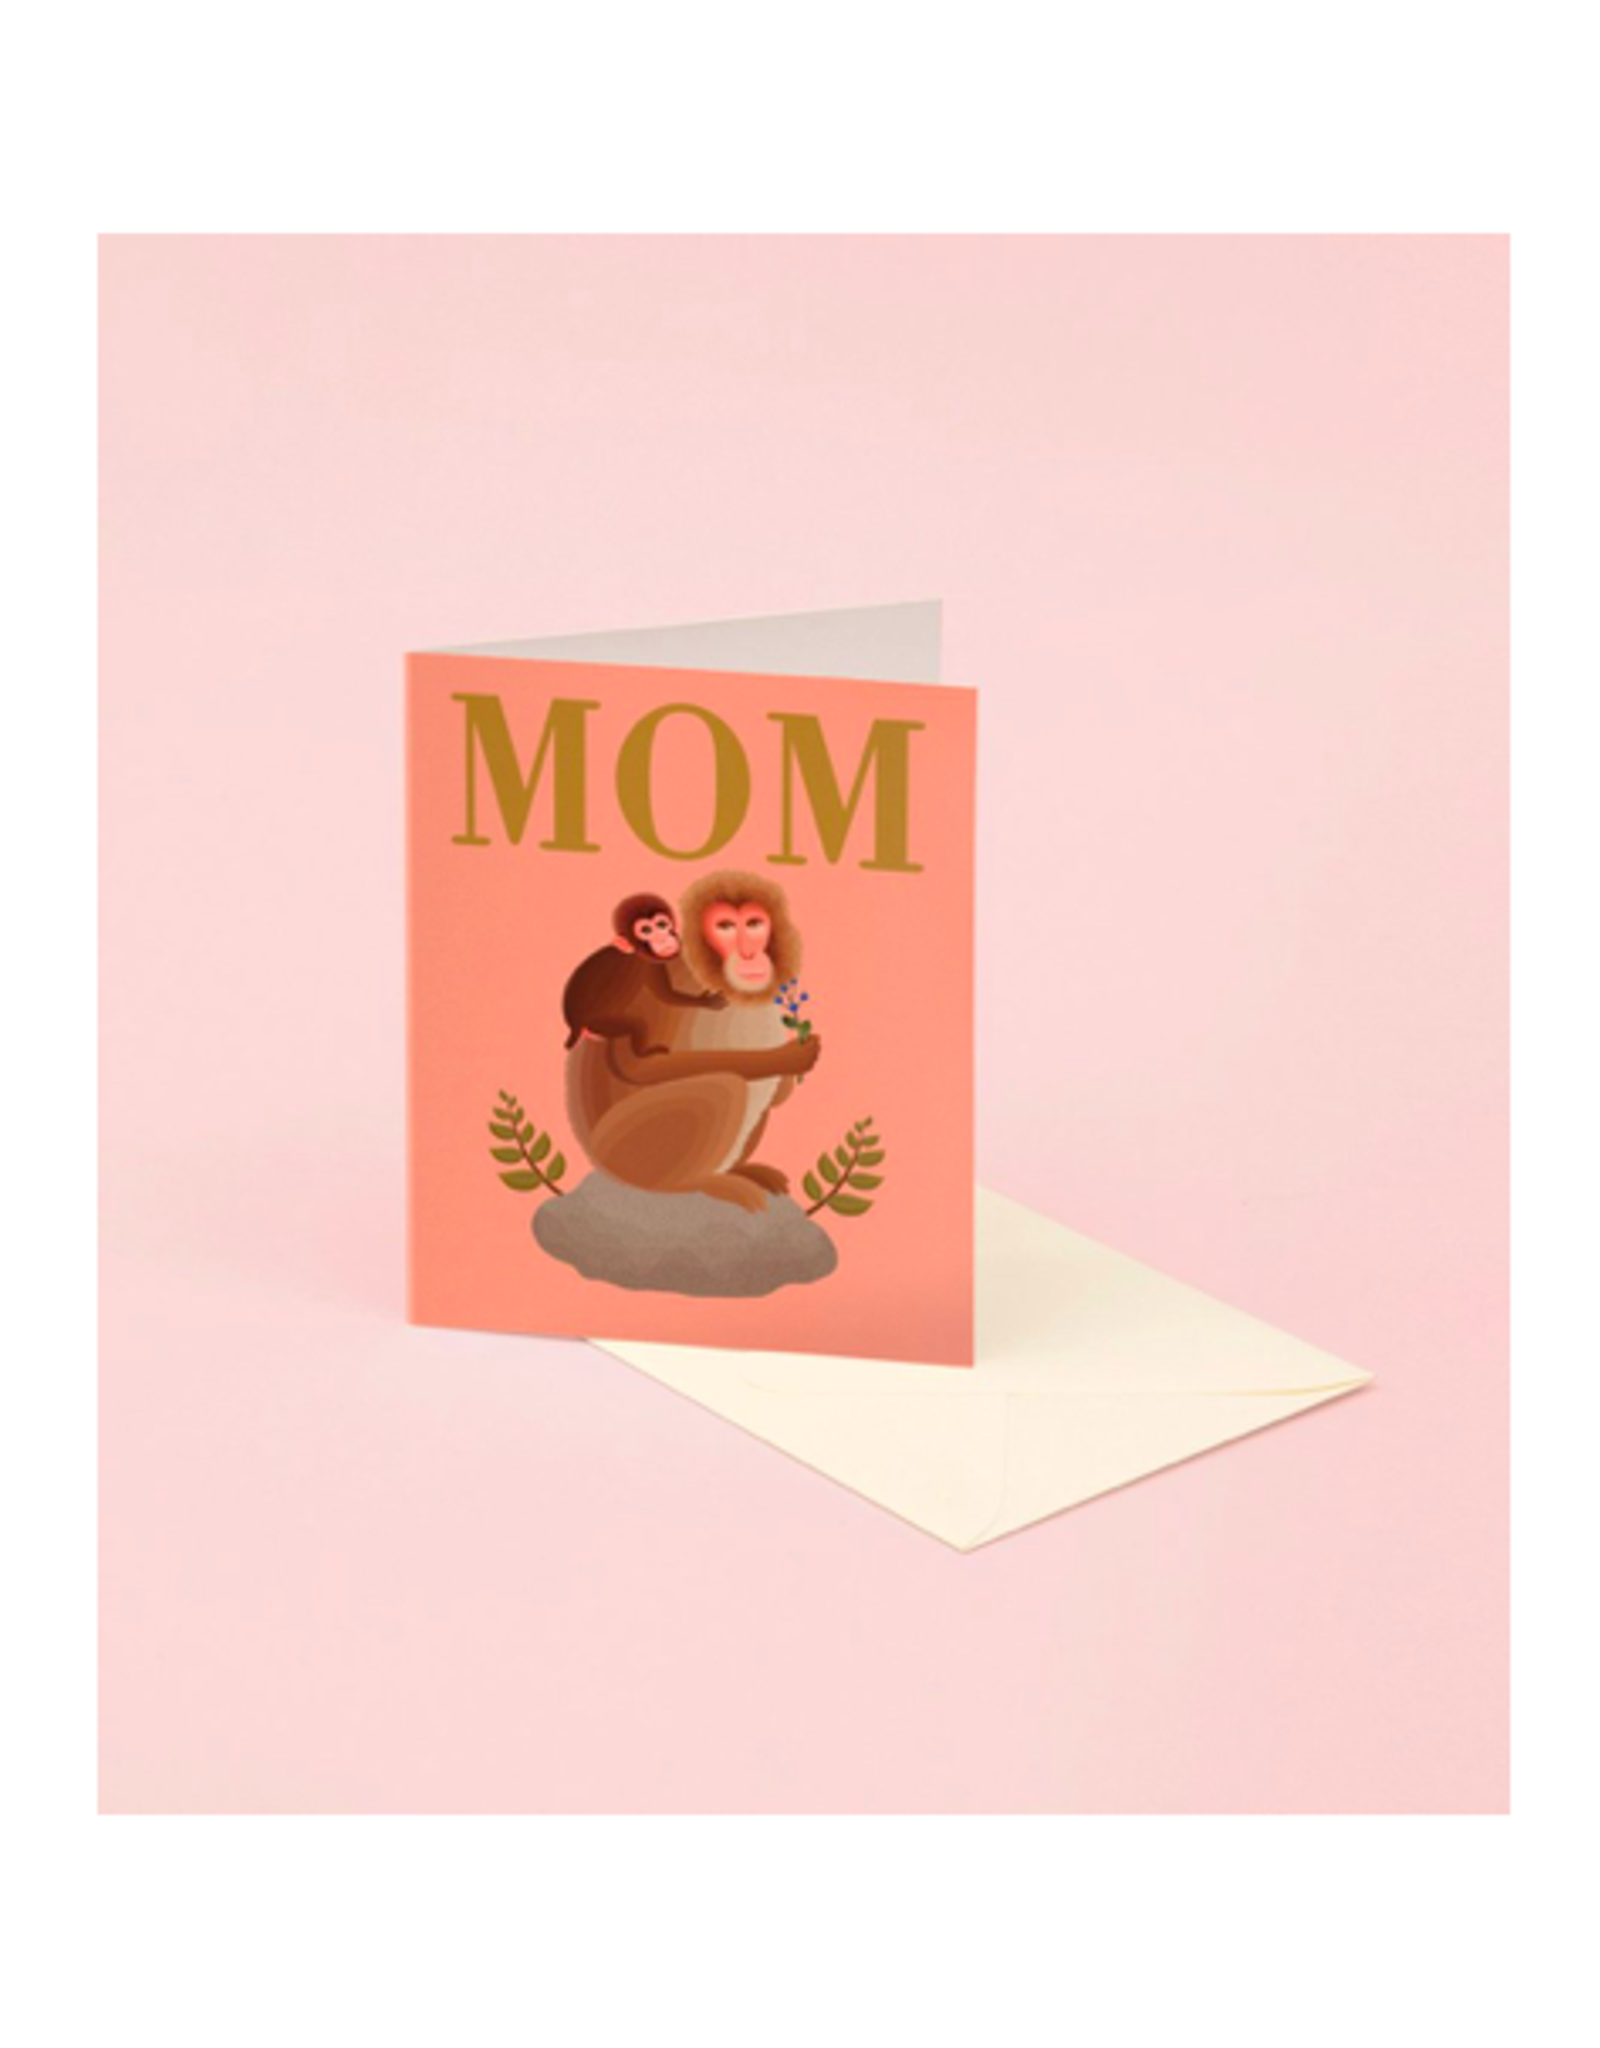 CAP - Card/Monkeys, Mother's Day, 4.25 x 5.5""